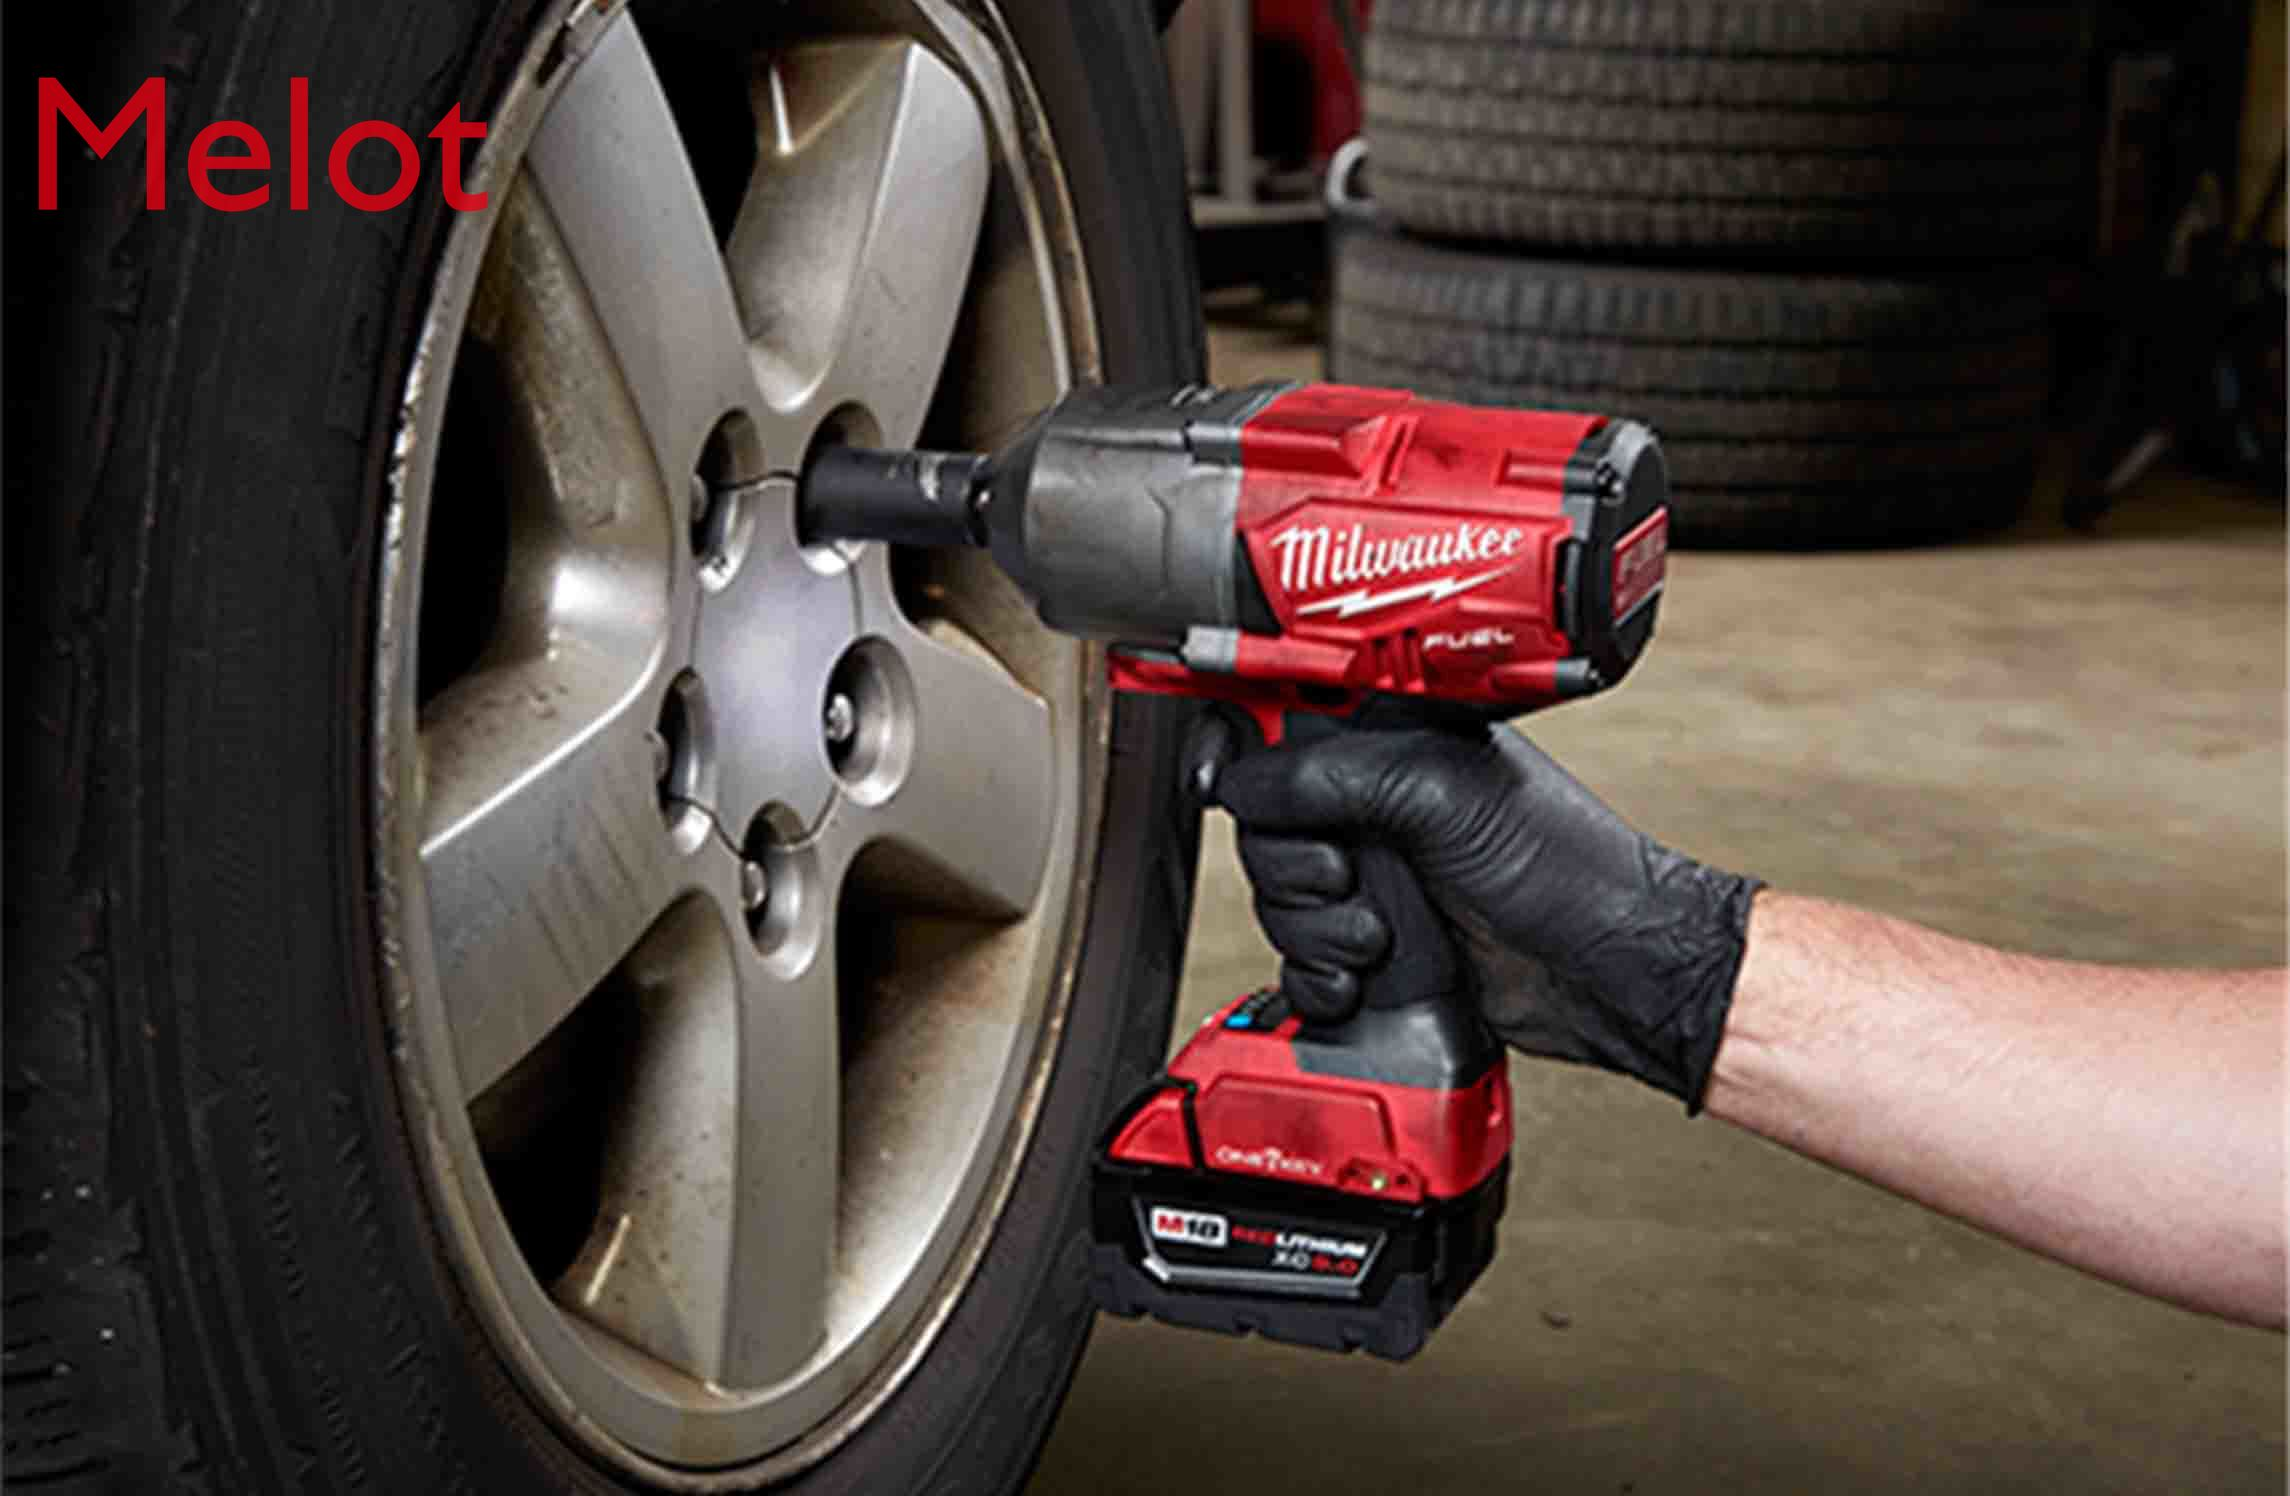 American Mivoch M18 Imported Second-hand 2863 Brushless Rechargeable Lithium Battery Bluetooth Impact Electric Gun Wrench enlarge